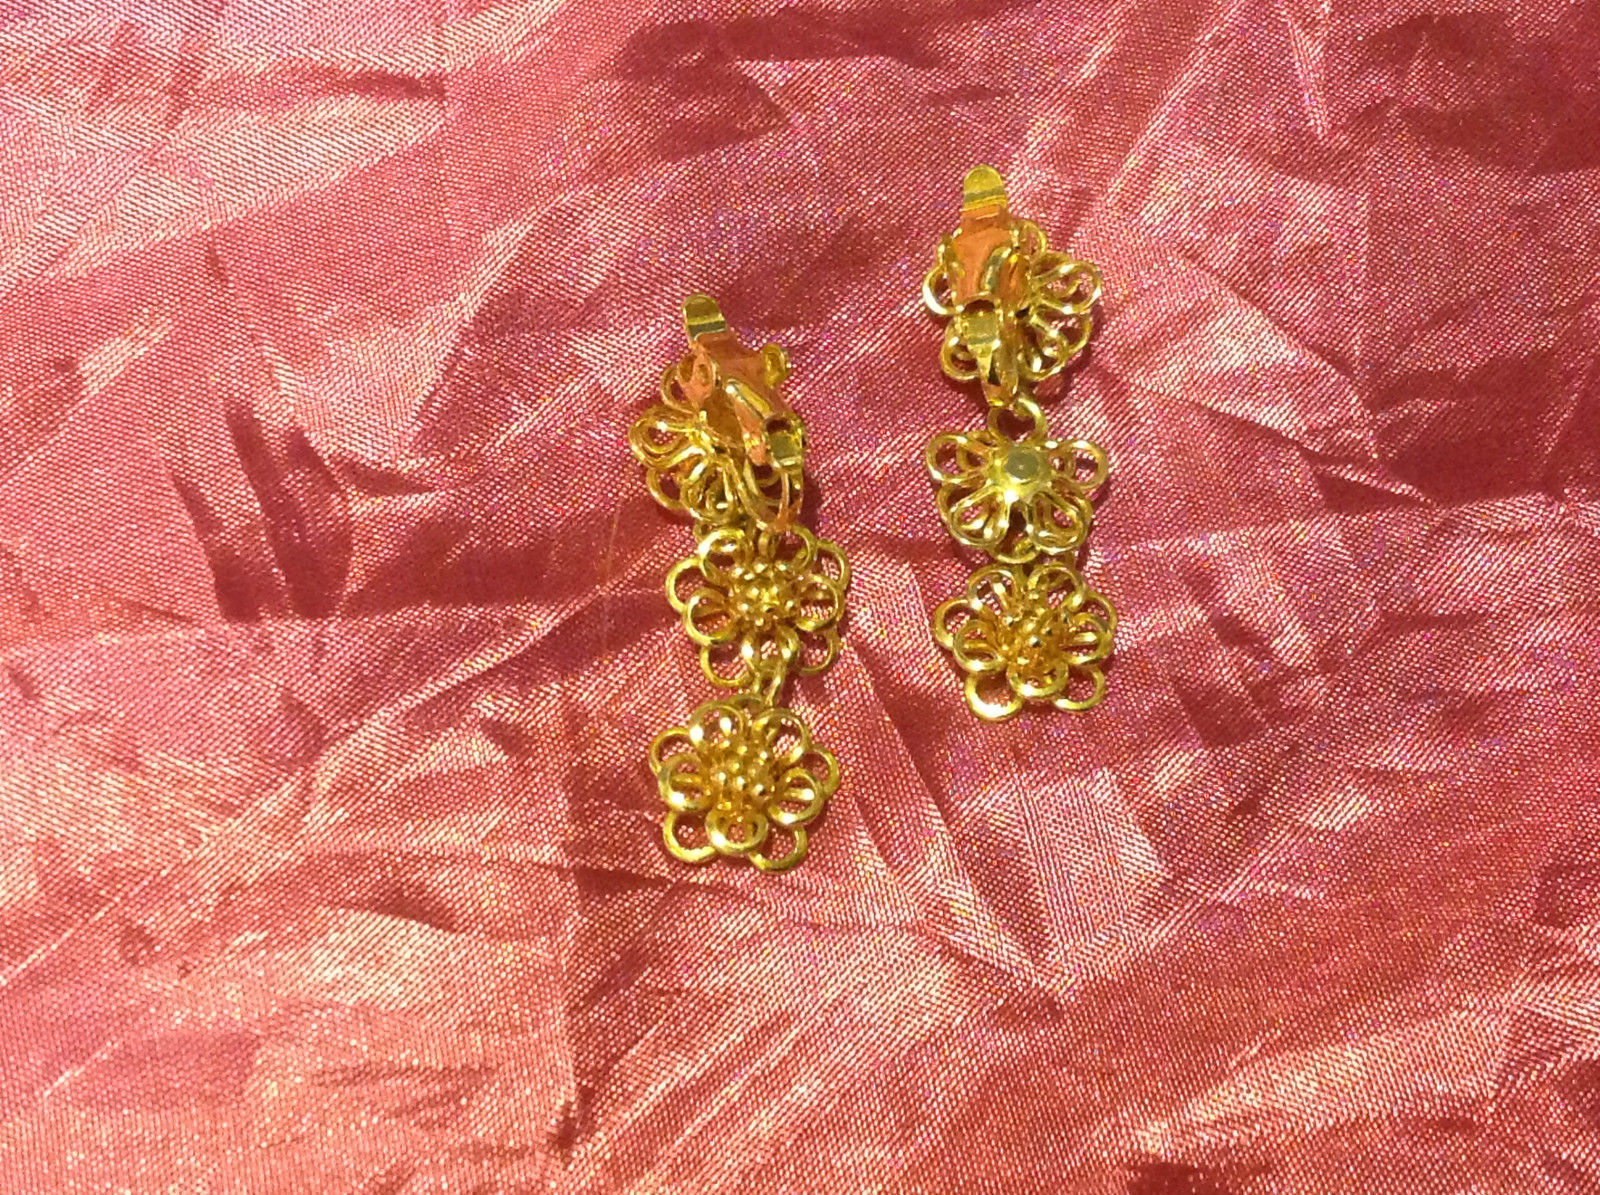 Gold Colored Clip-On Earrings with 3 Gold Colored Dangling Flowers 2.5 Inches